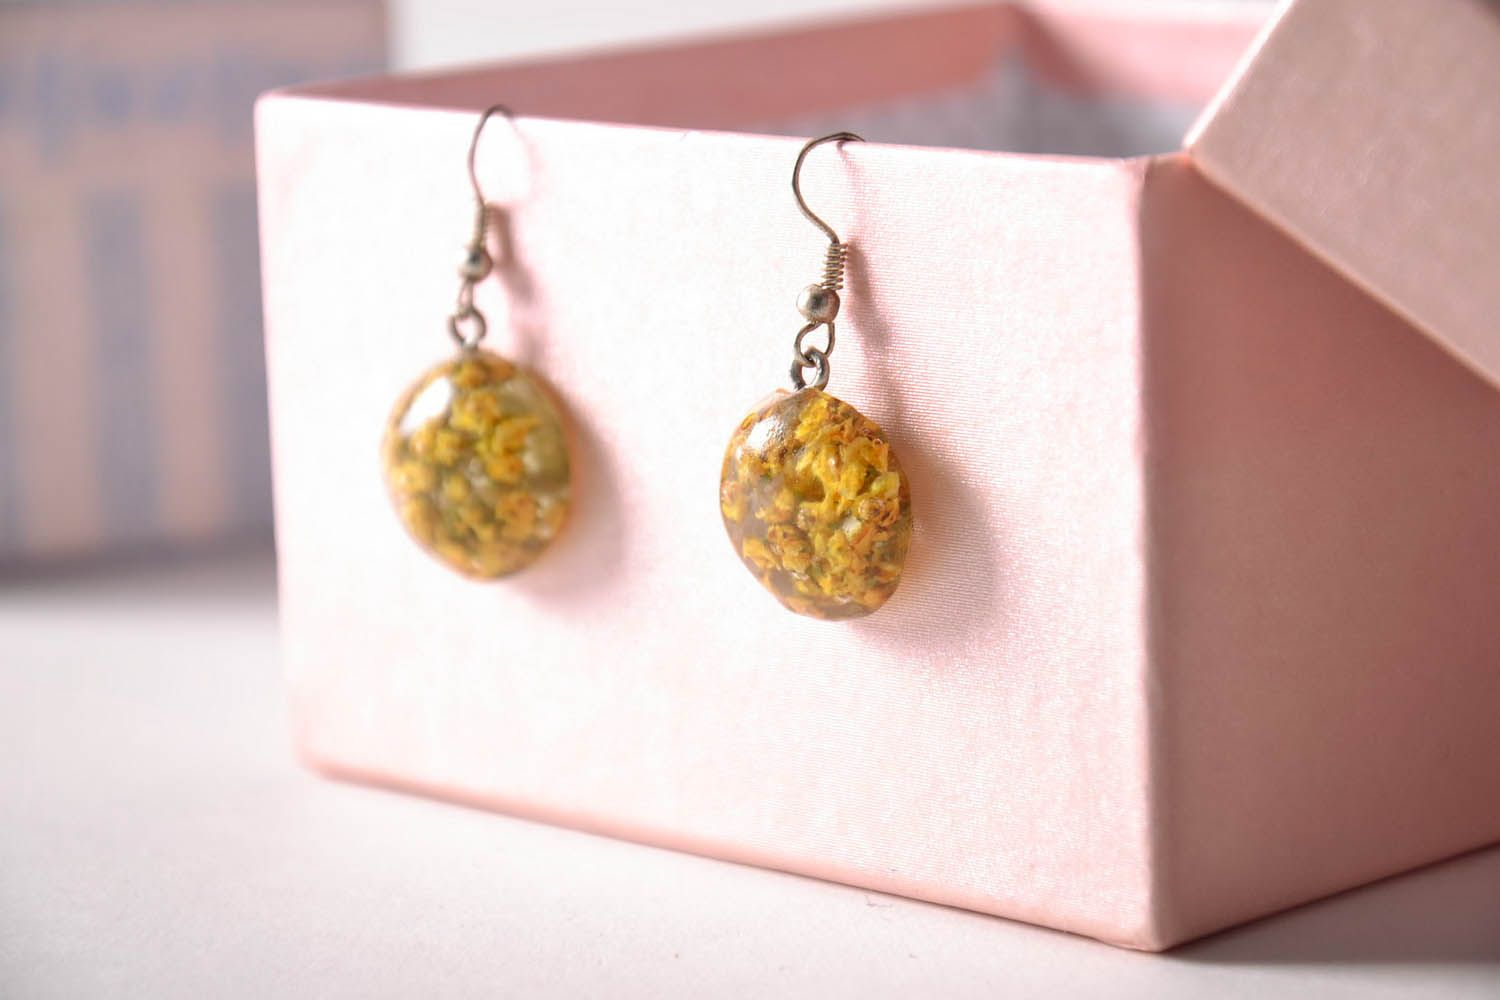 Earrings with dried flowers in epoxy resin photo 2